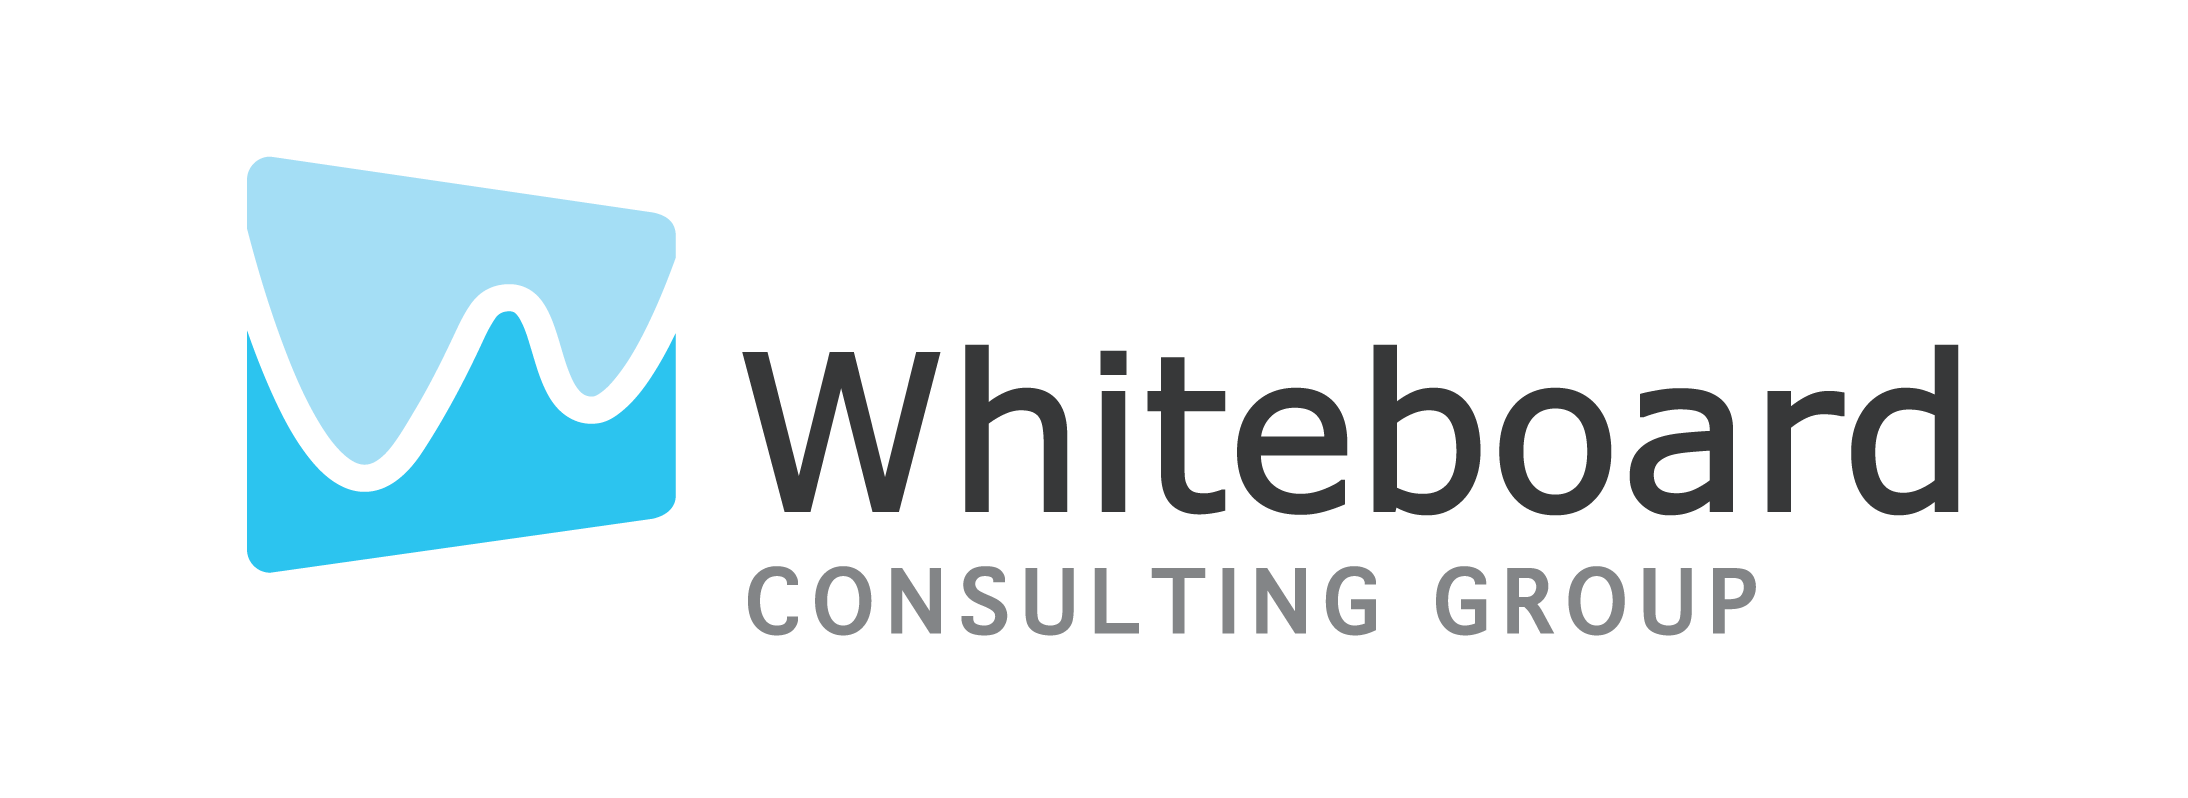 Whiteboard Consulting Group Inc.